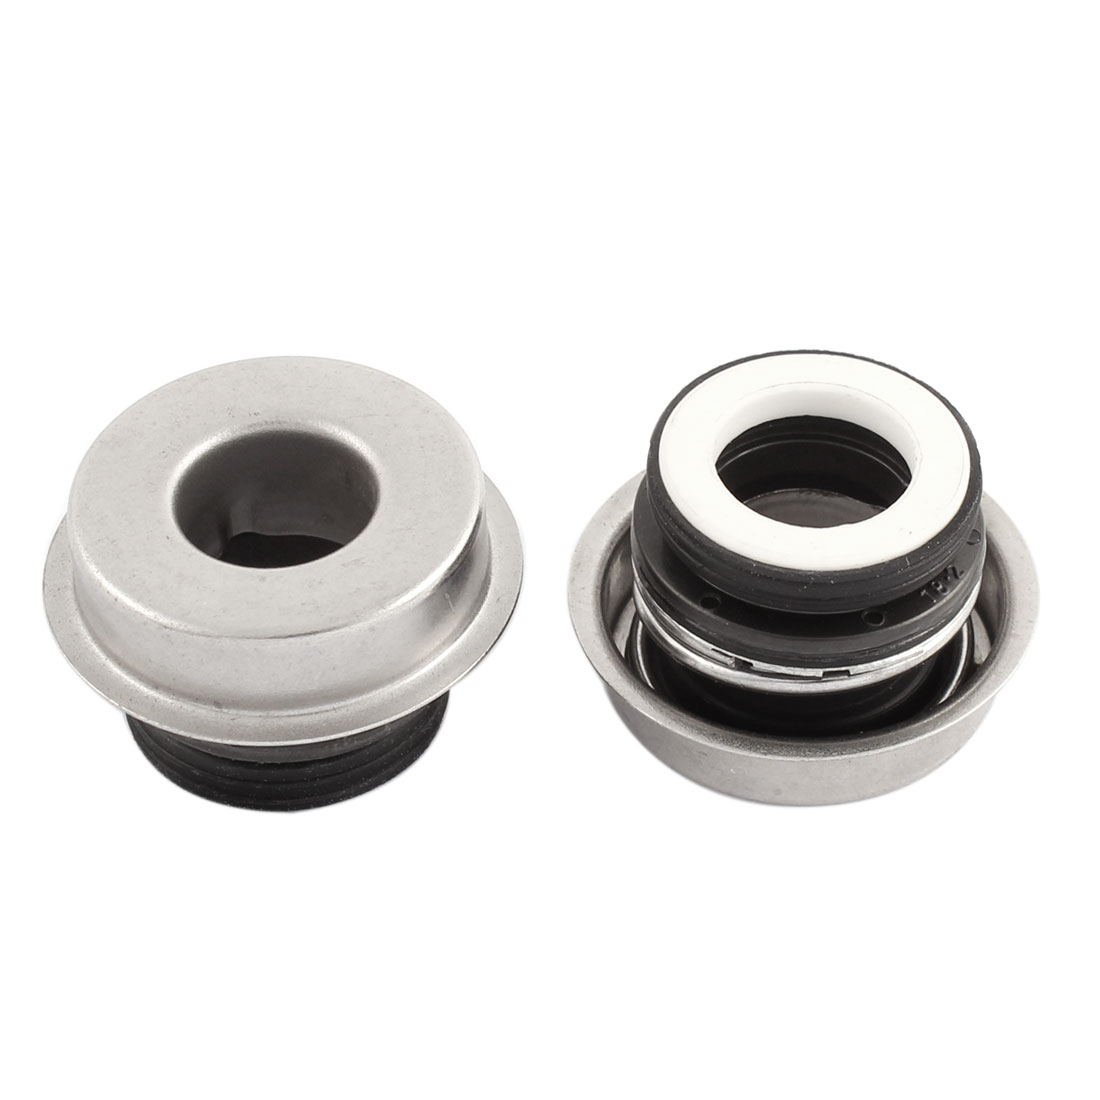 Water Pump Mechanical Oil Seal Silver Tone 2 Pcs